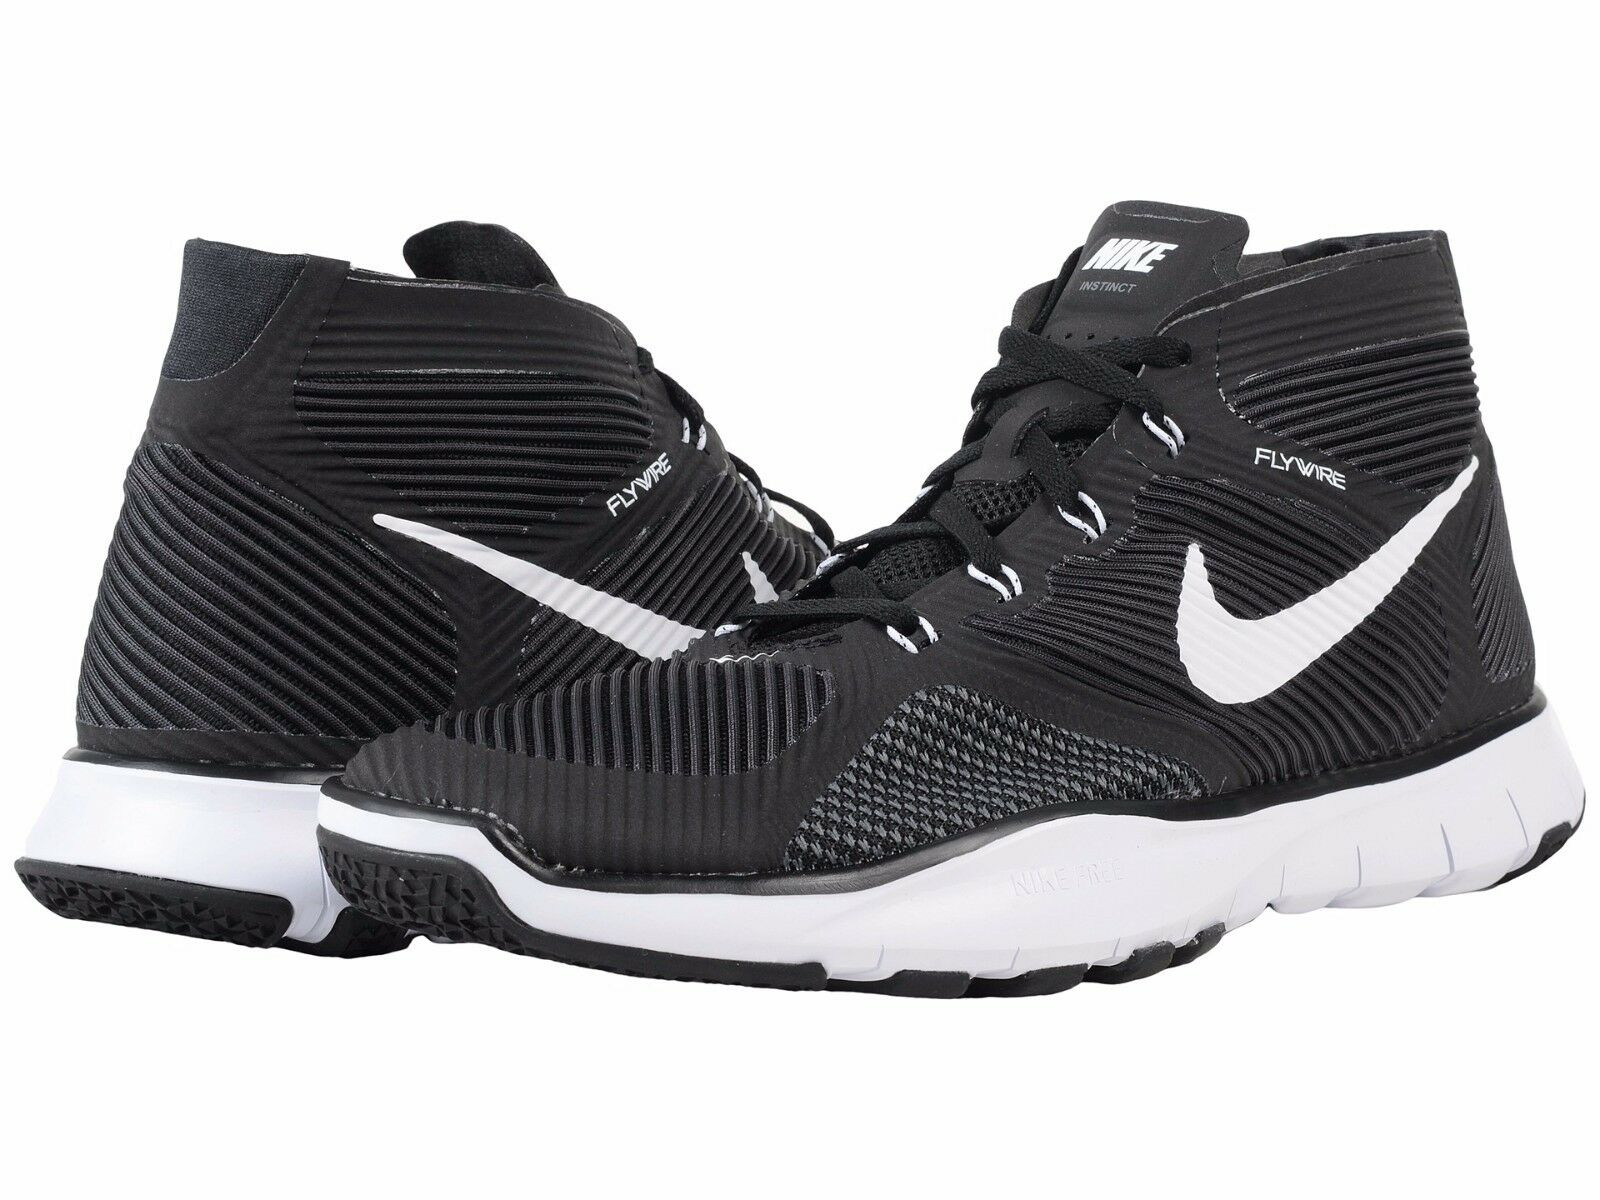 Men's Nike Free Train Instinct Training Shoes, 833274 010 Sizes 9-11 Black/White